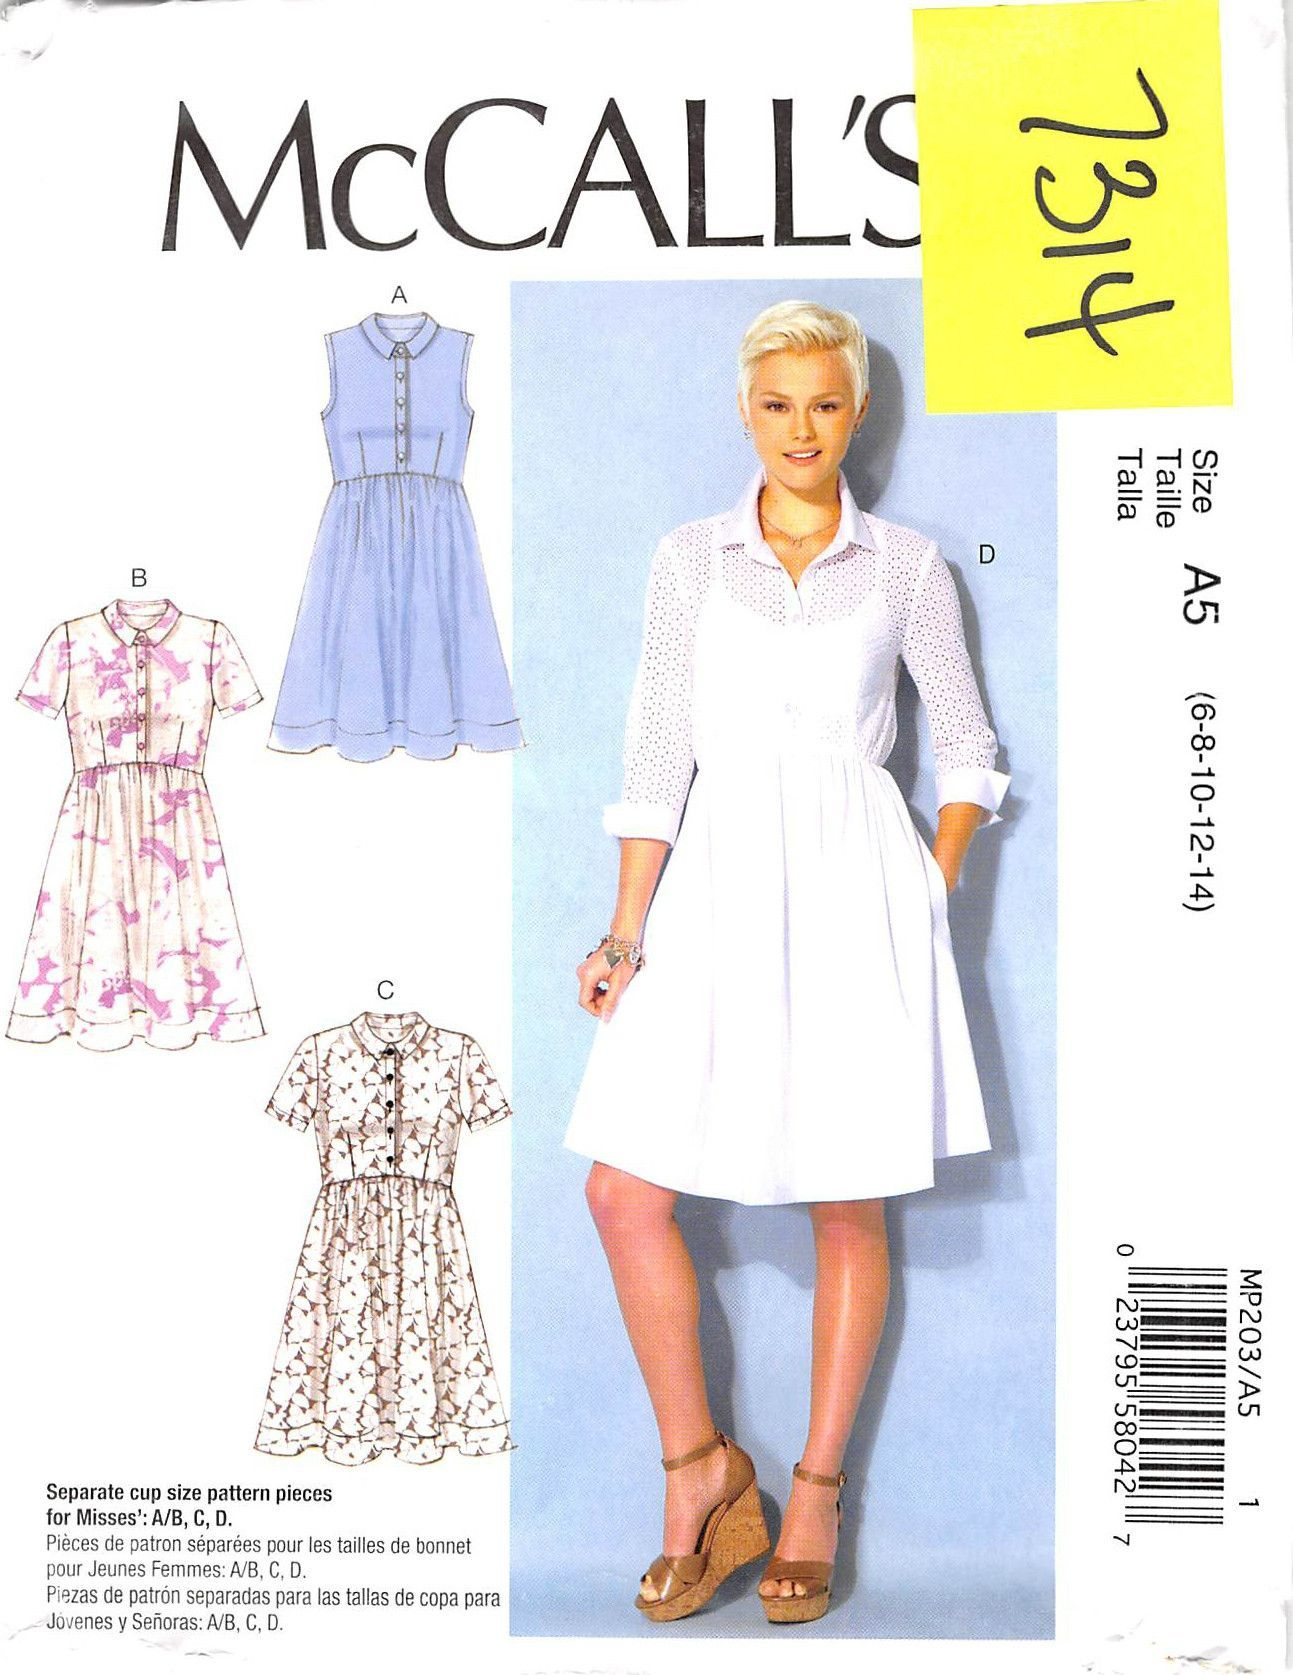 MCCALLS 7314 - FROM 2016 - UNCUT - MISSES DRESS | fashion History ...